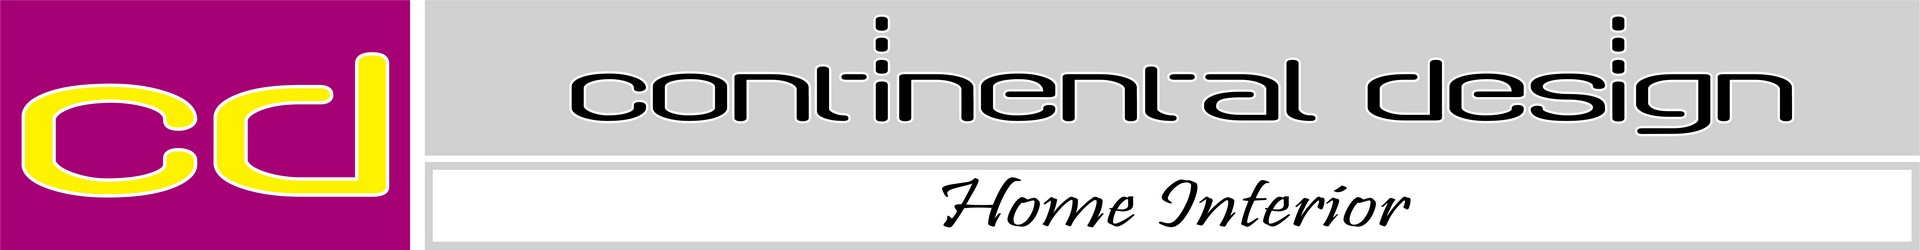 LOGO Continental Design Home Interior